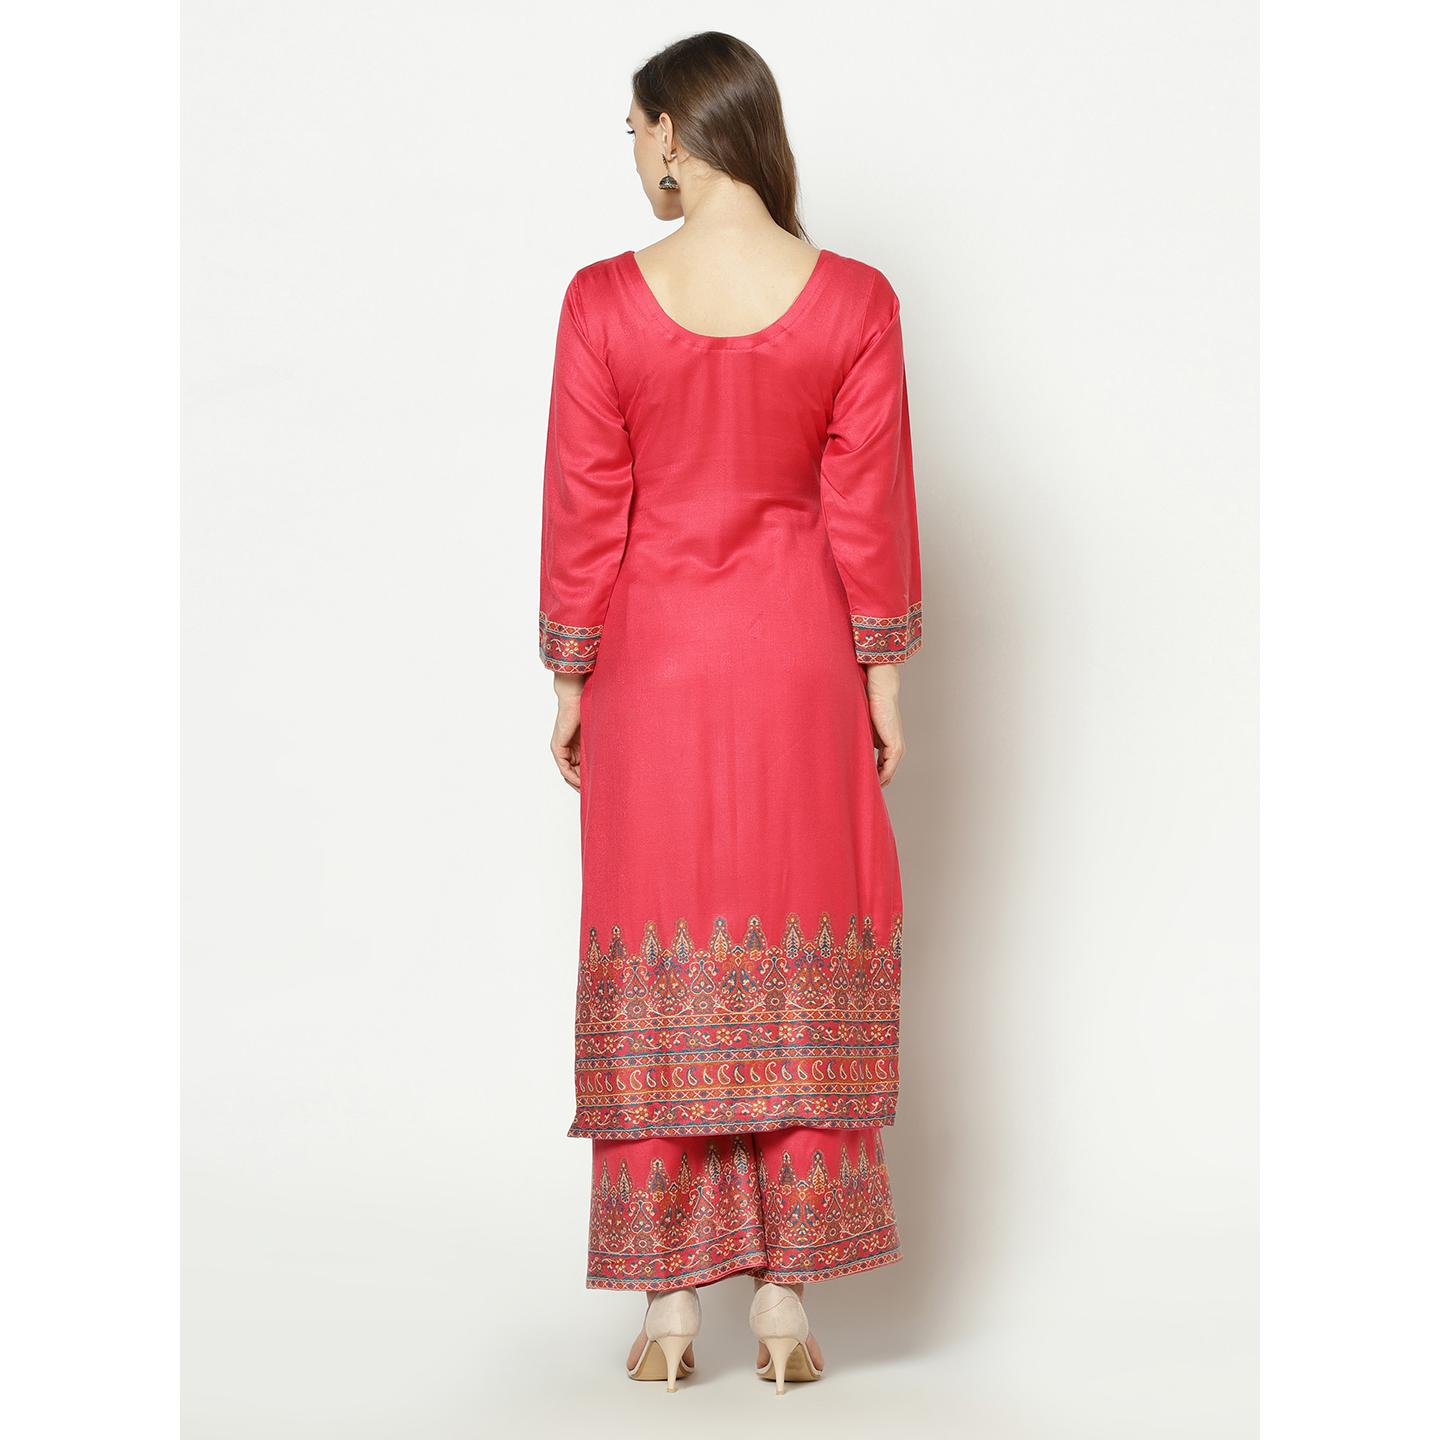 Safaa - Red Colored Party Wear Zari Woven Print Acro Wool Dress Material